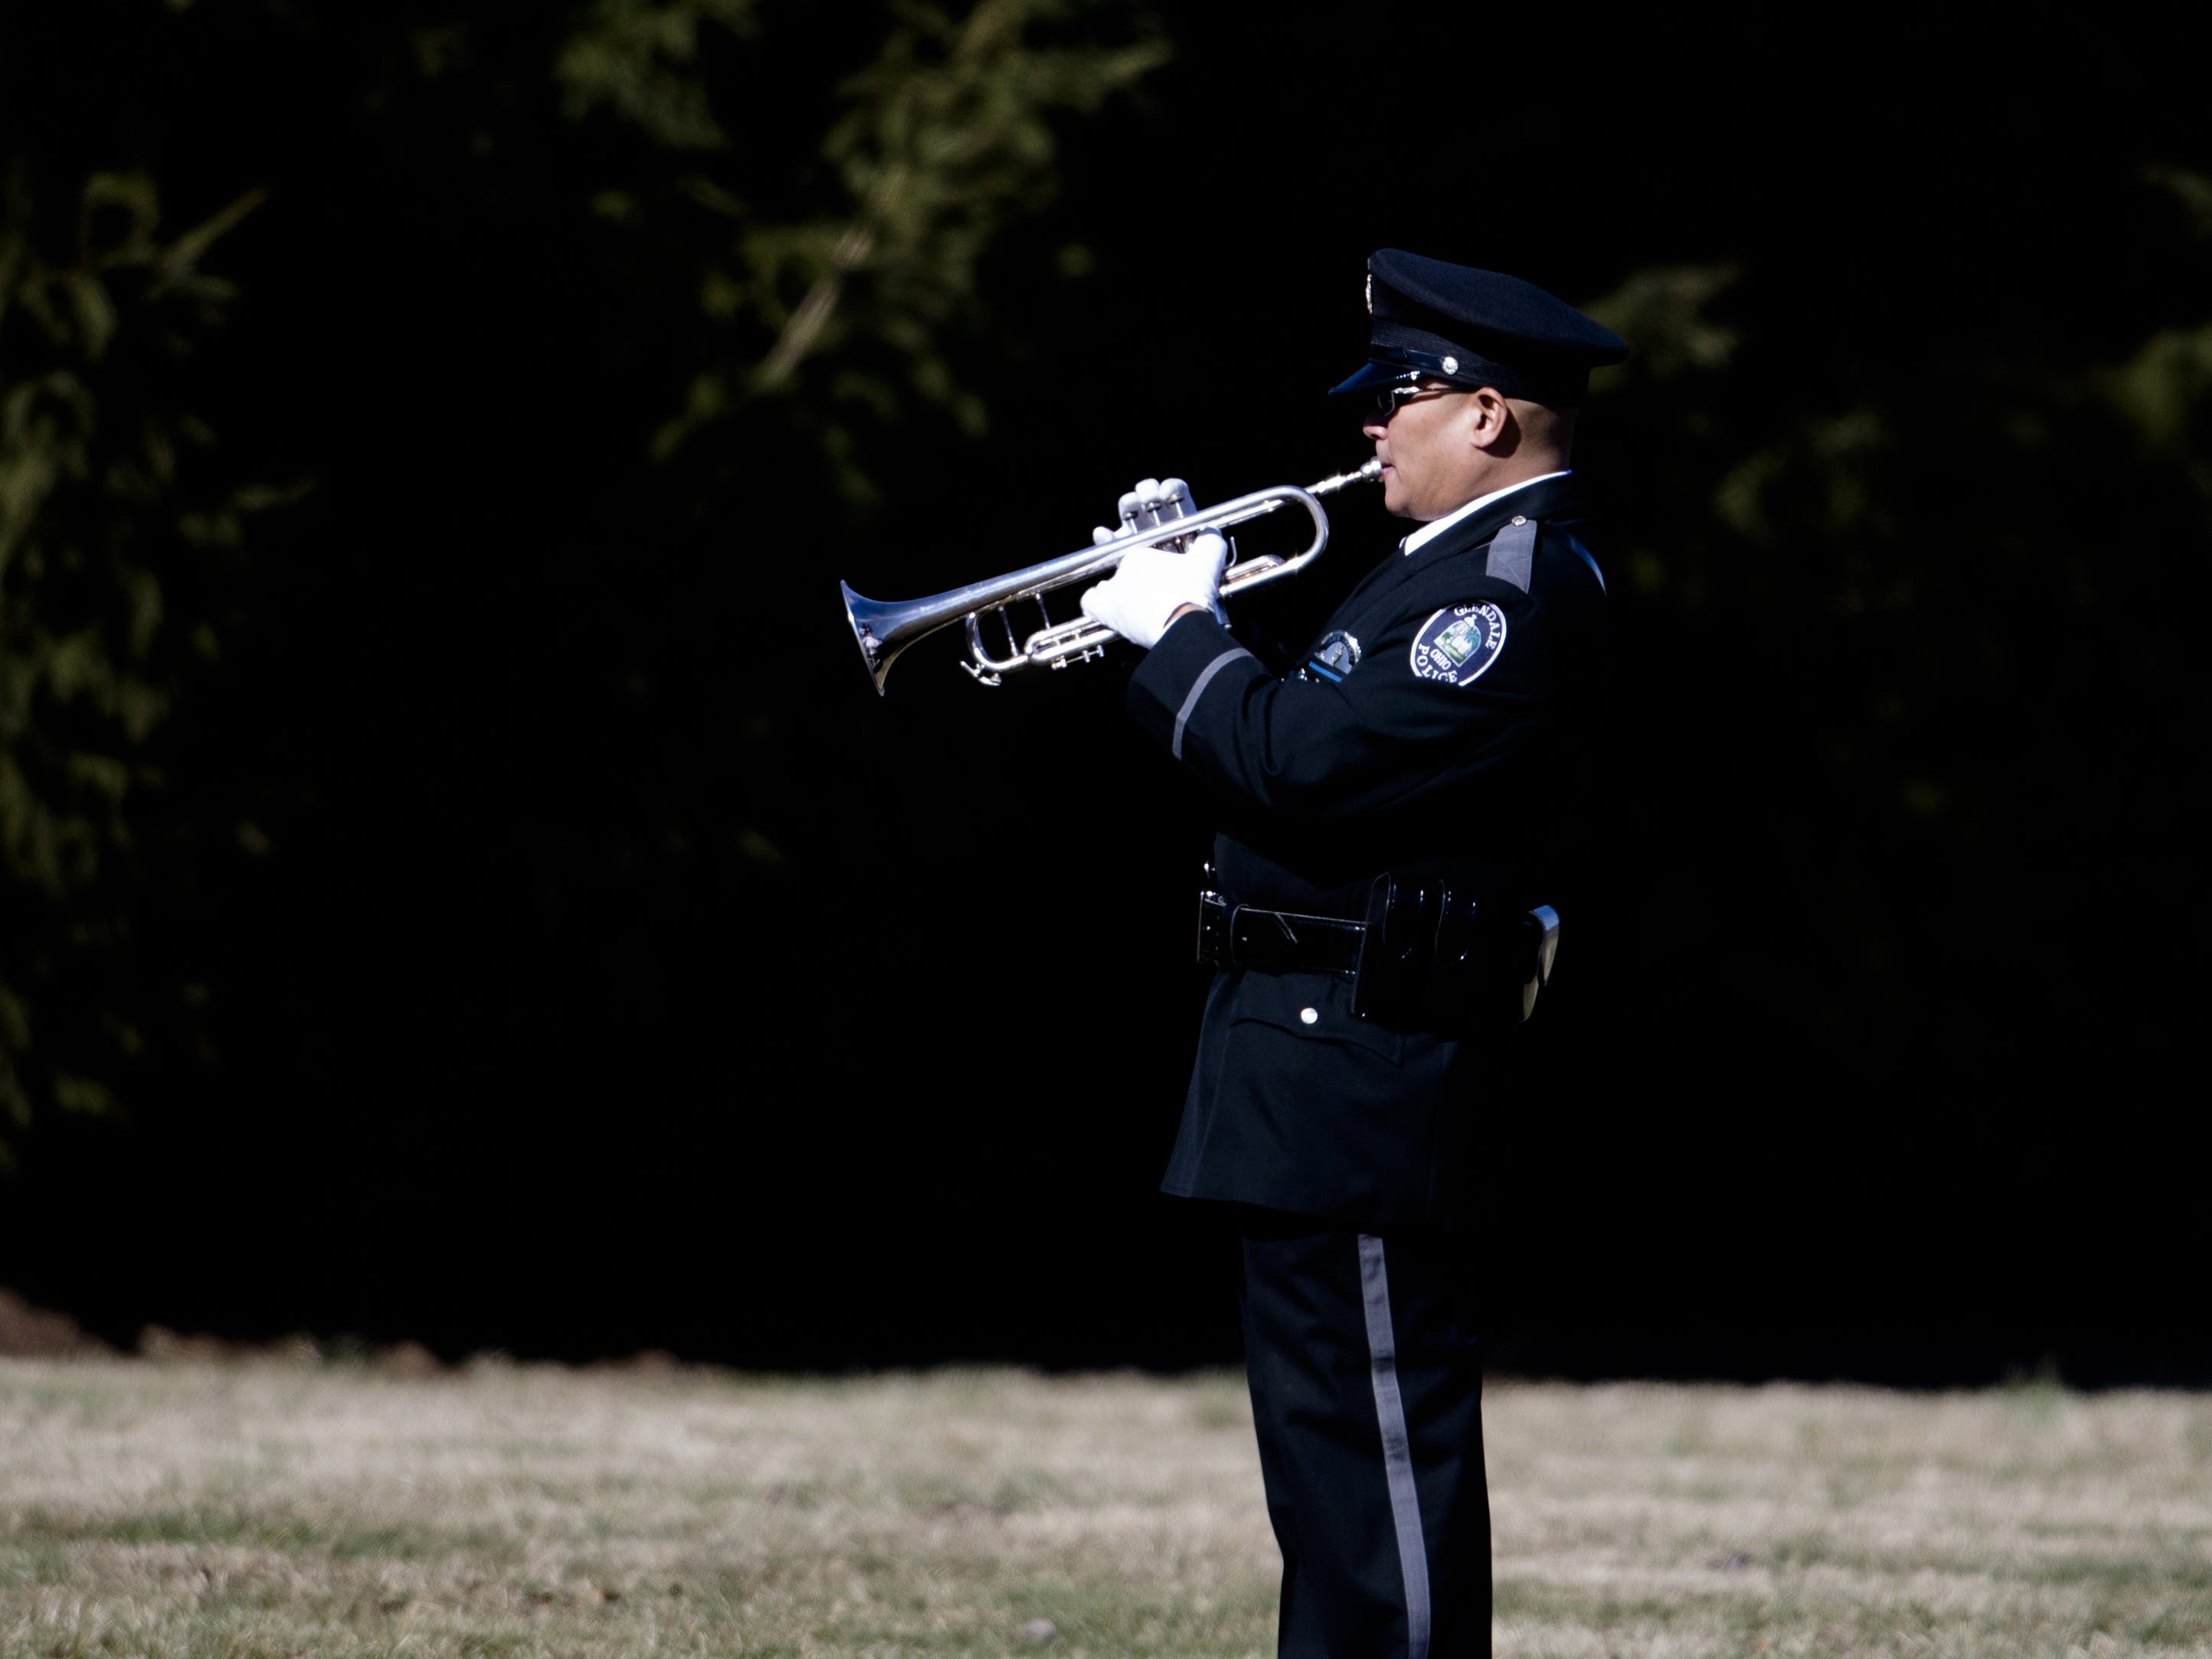 An officer practices playing TAPS before the burial service of Detective Bill Brewer, a 20-year veteran of the Clermont County Sheriff's Office, on Friday, Feb. 8, 2019, at Pierce Township Cemetery in Cincinnati. Brewer, 42, of Pierce Township, died in the line of duty. He was shot Feb. 2 during a standoff. Deputy Brewer is survived by a wife and 5-year-old son.